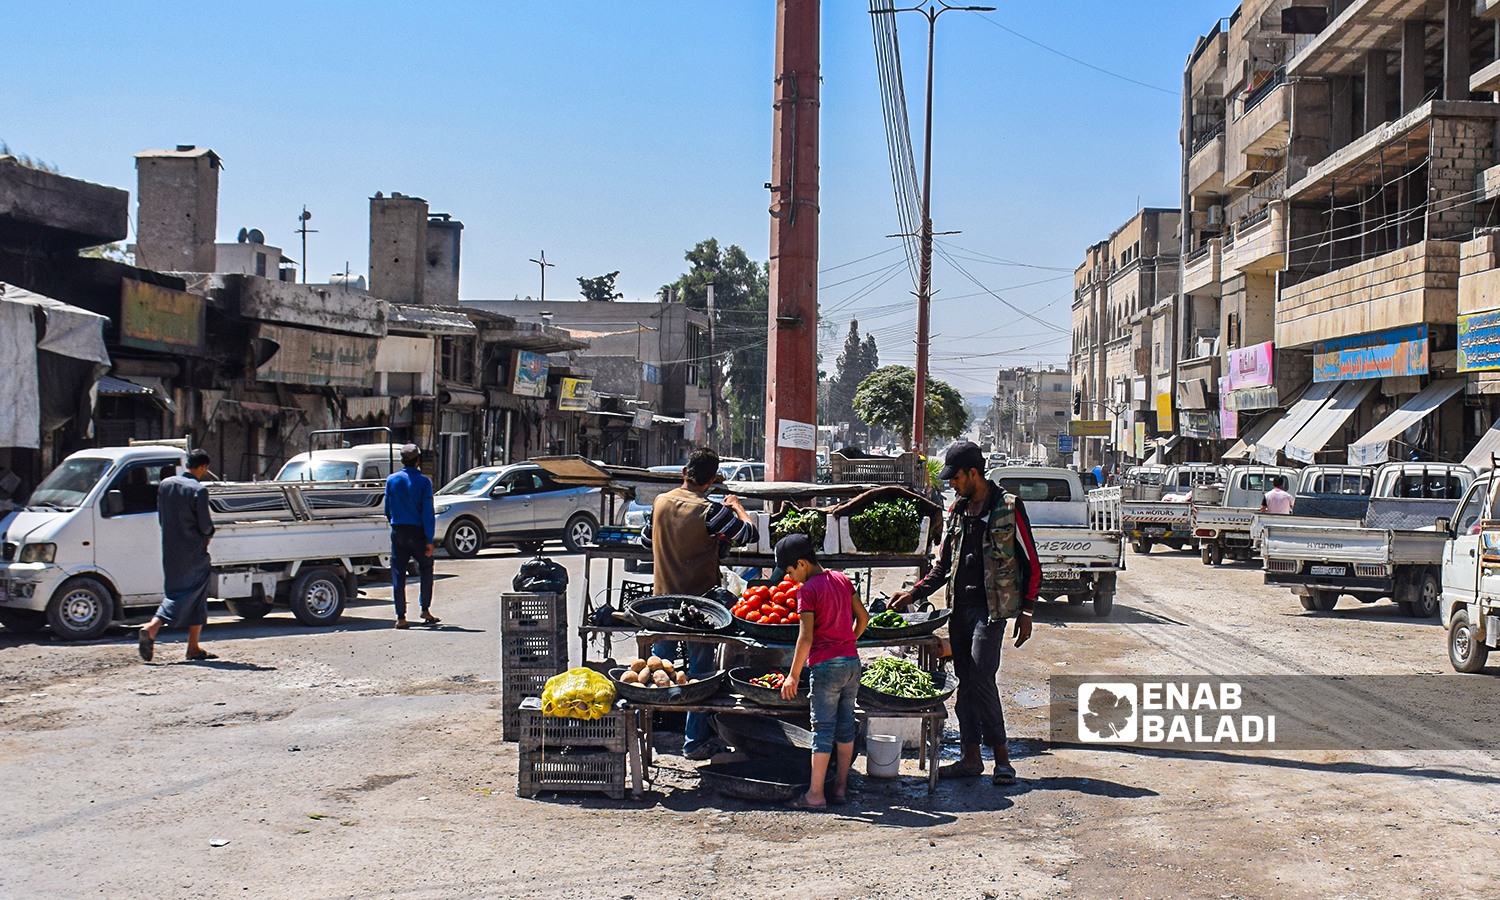 A vegetable seller in the middle of al-Mansour Street in the city of Raqqa-23 August 2021(Enab Baladi/Hussam al-Omar)